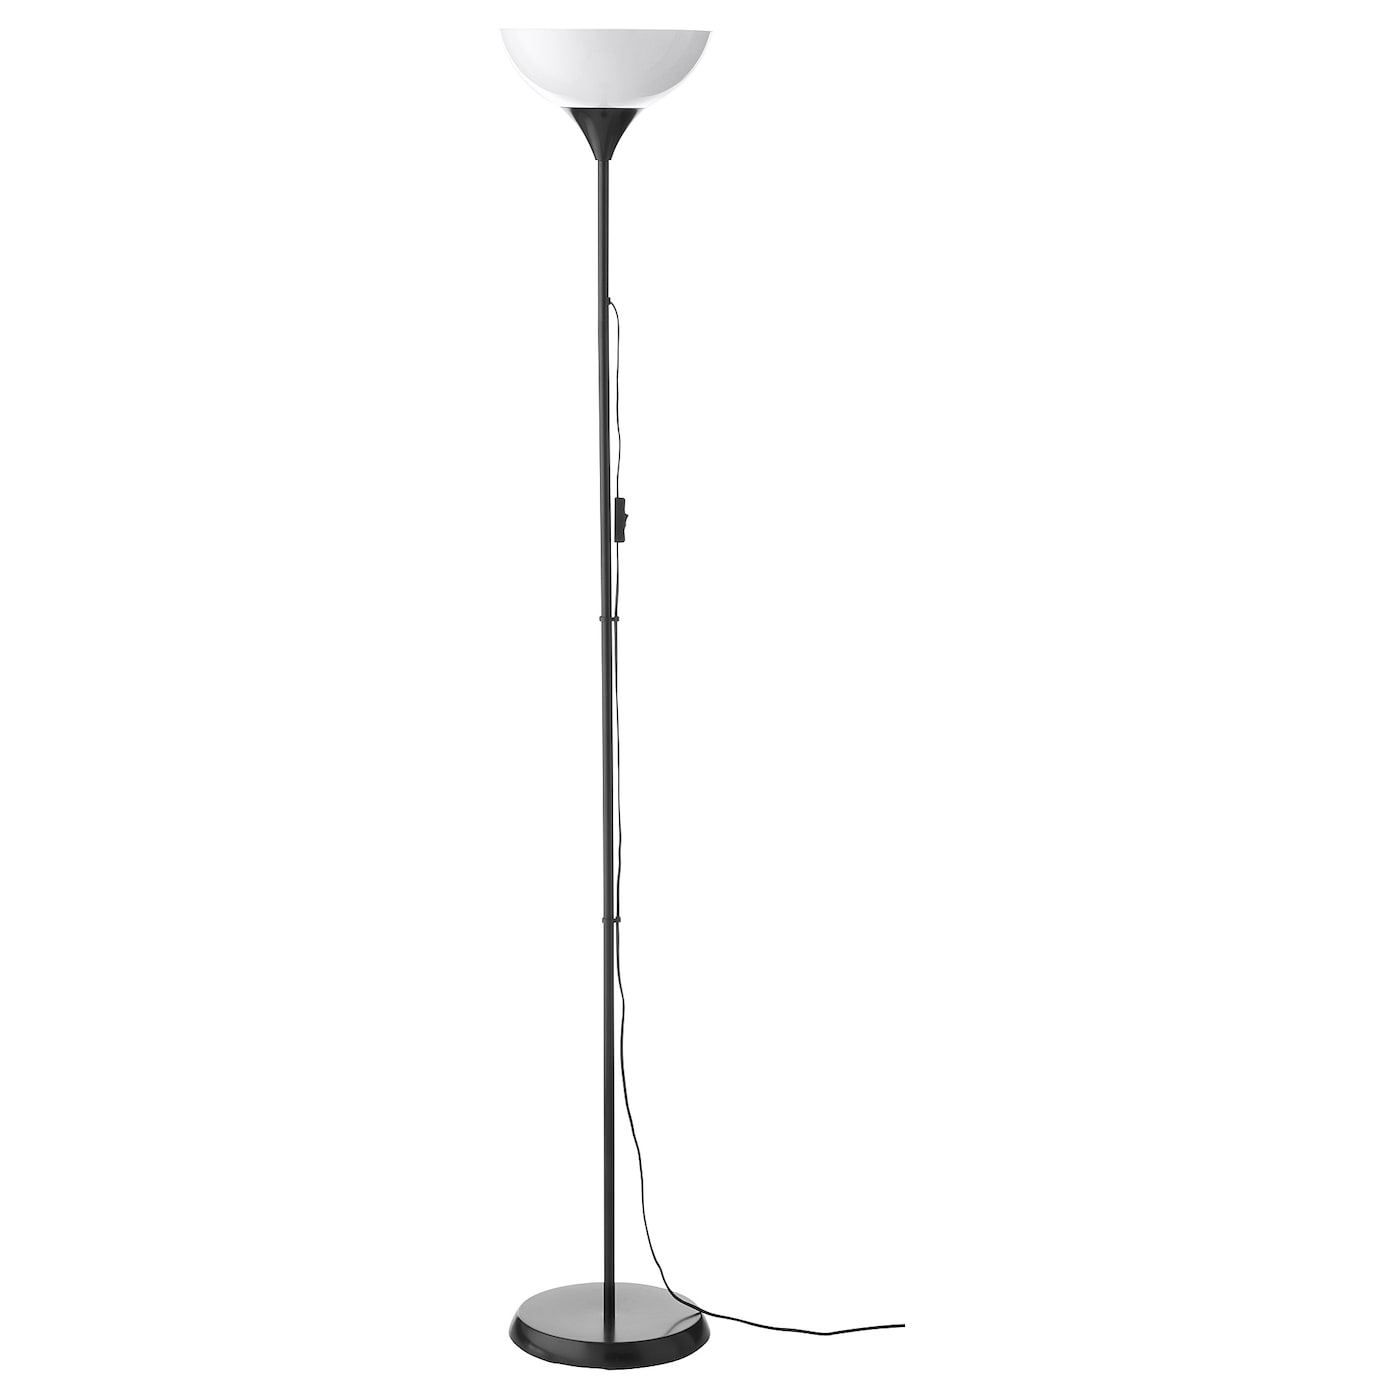 IKEA KVART Tall Floor Standing Lamp Black and Silver Colour Reading Light